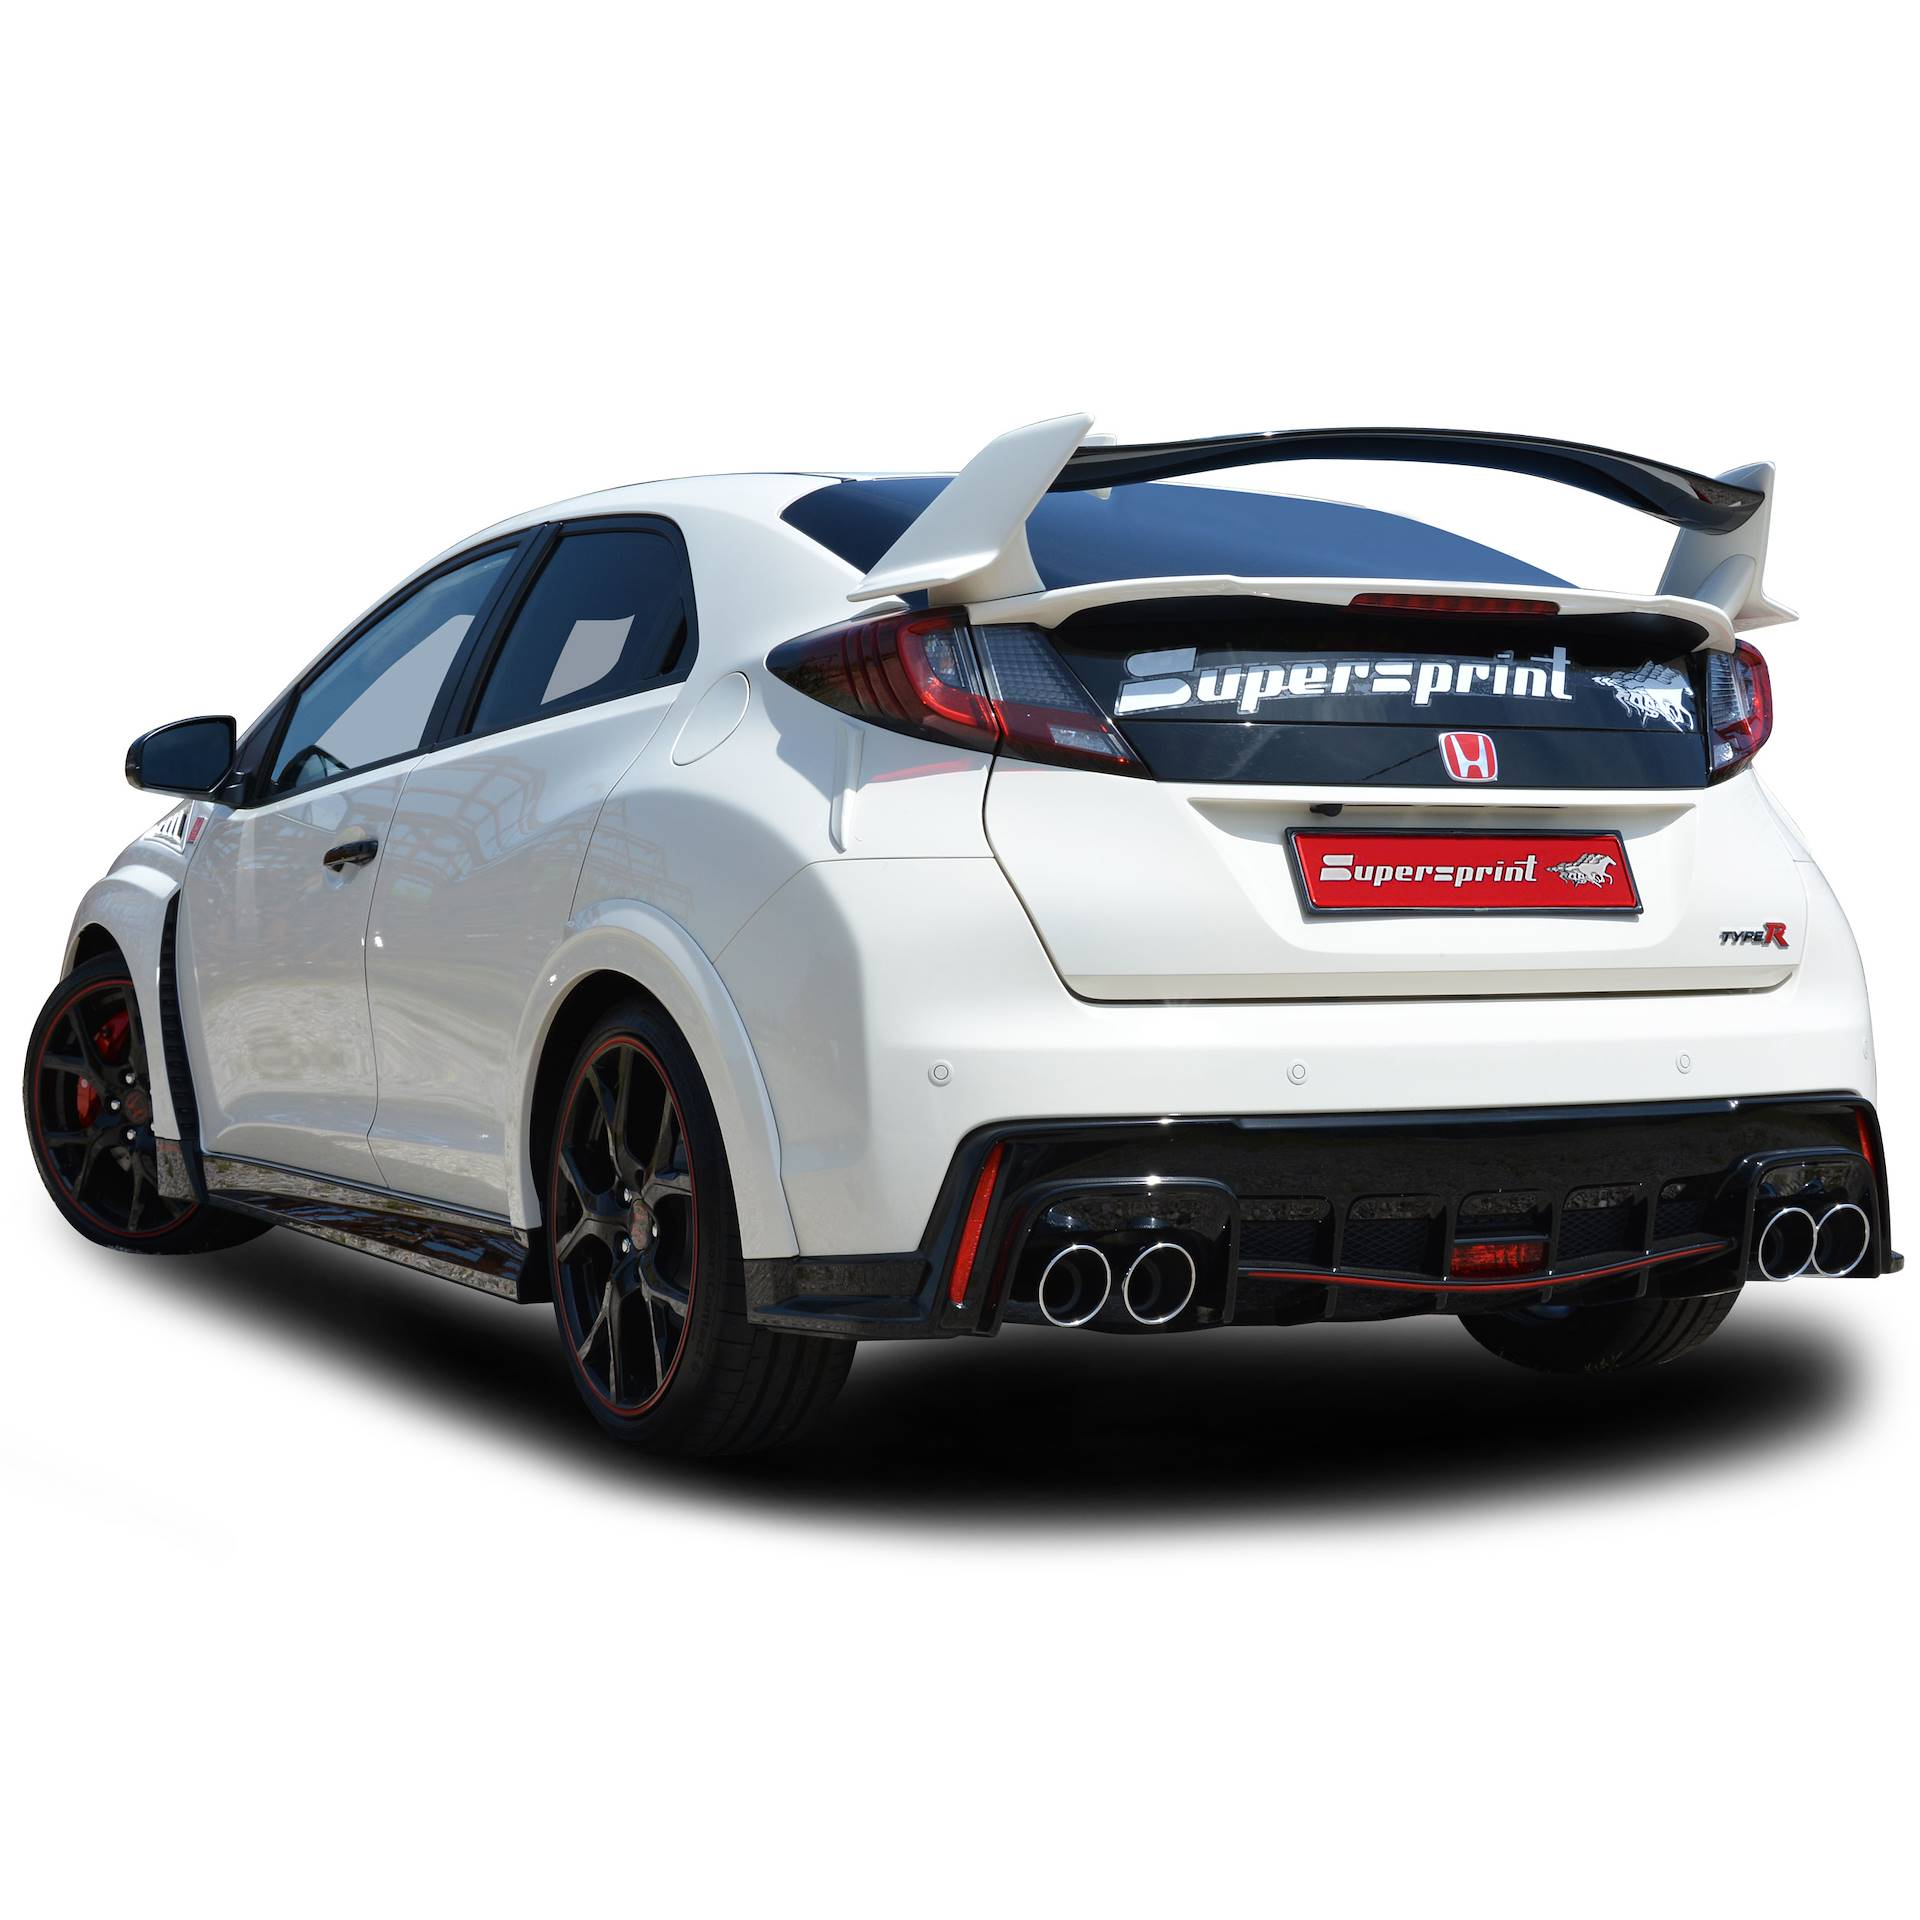 Honda - HONDA CIVIC 2.0i Turbo TYPE-R (310PS) 2015 ->